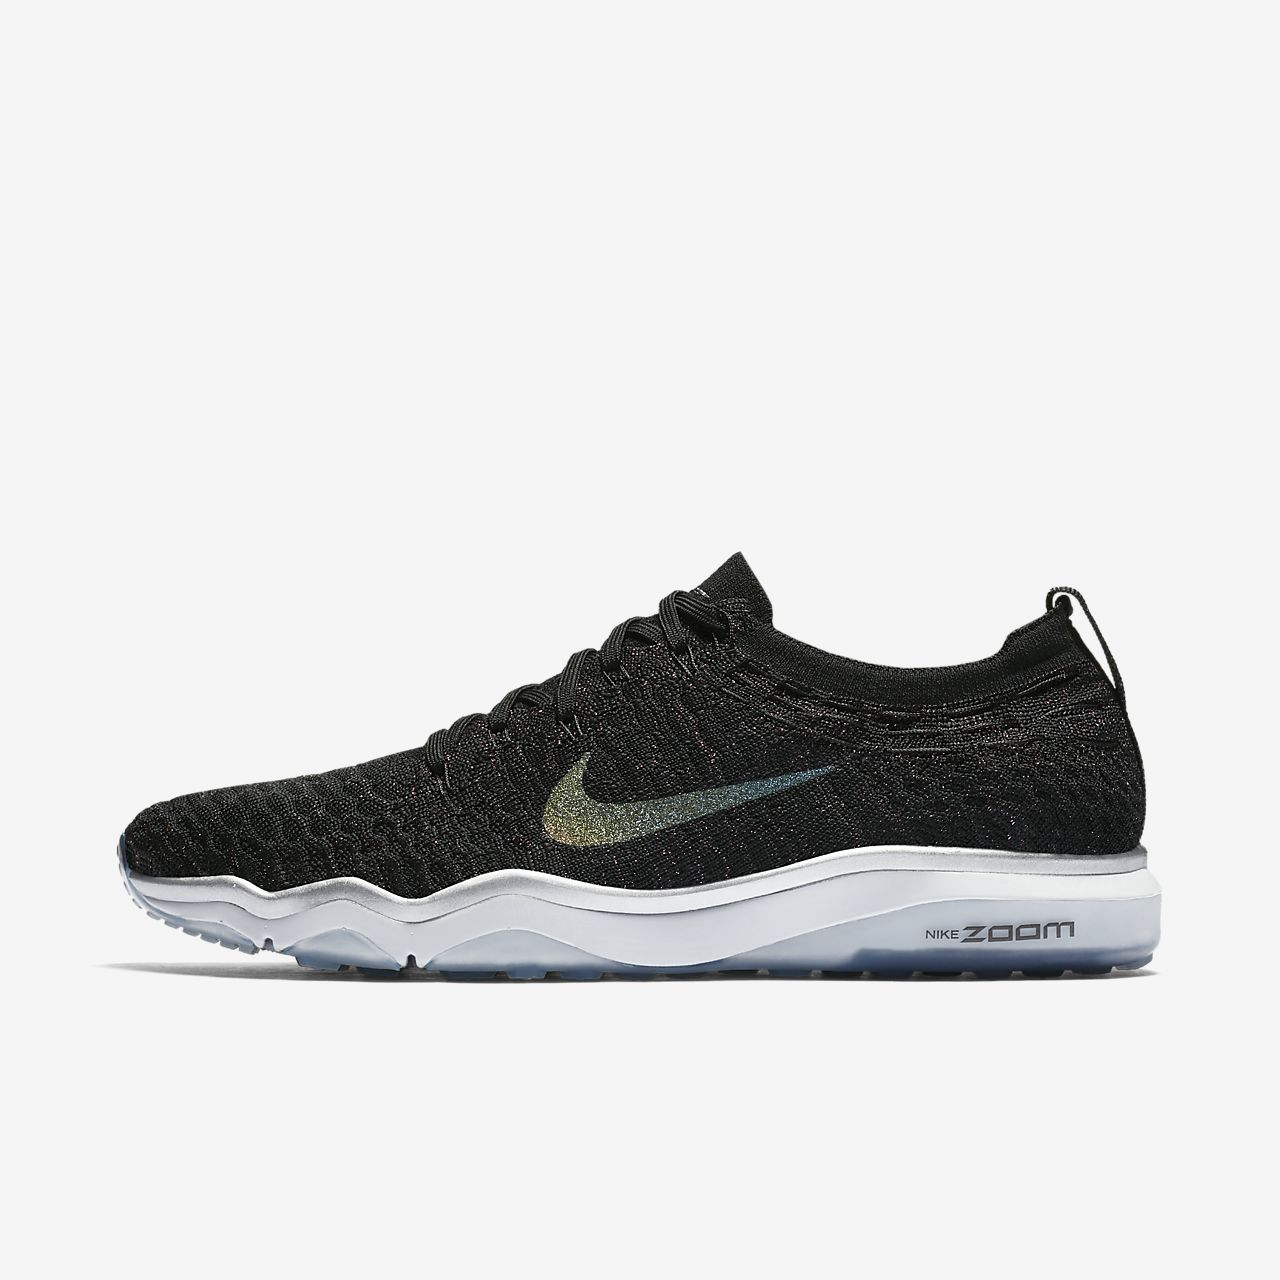 ... Nike Air Zoom Fearless Flyknit Metallic Women's Training Shoe